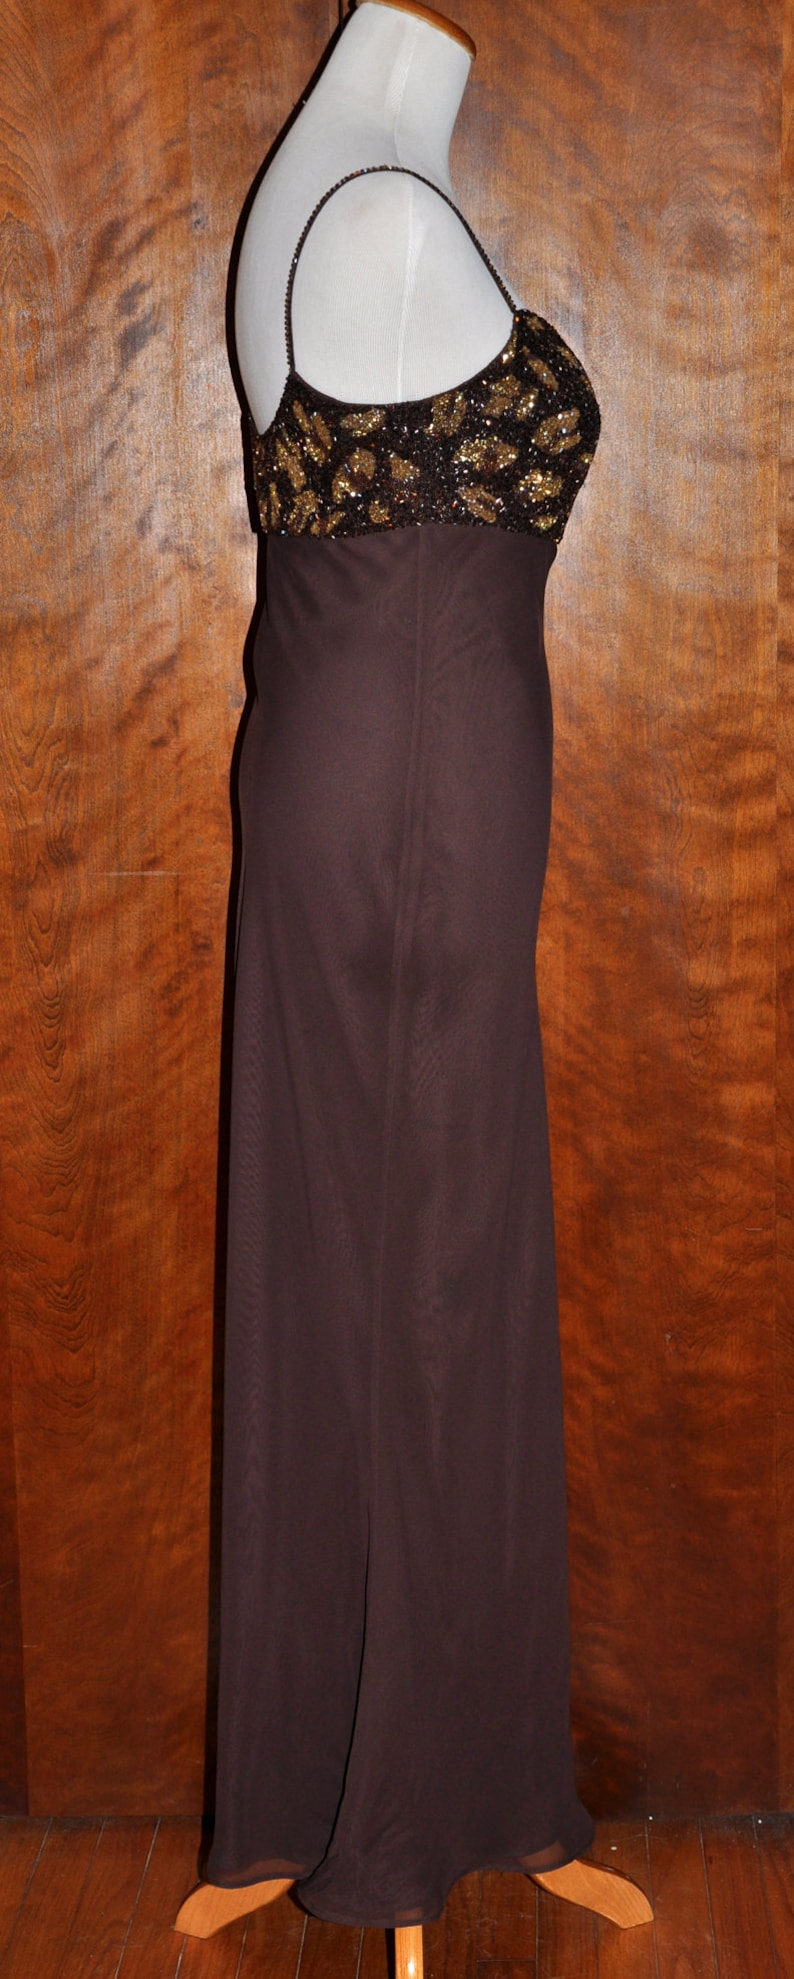 Vintage Dark Brown Empire Waist Beaded Spaghetti Strap Gown Brown Vintage Full Length Gown Mother of Bride Brown Beaded Empire Waist Gown